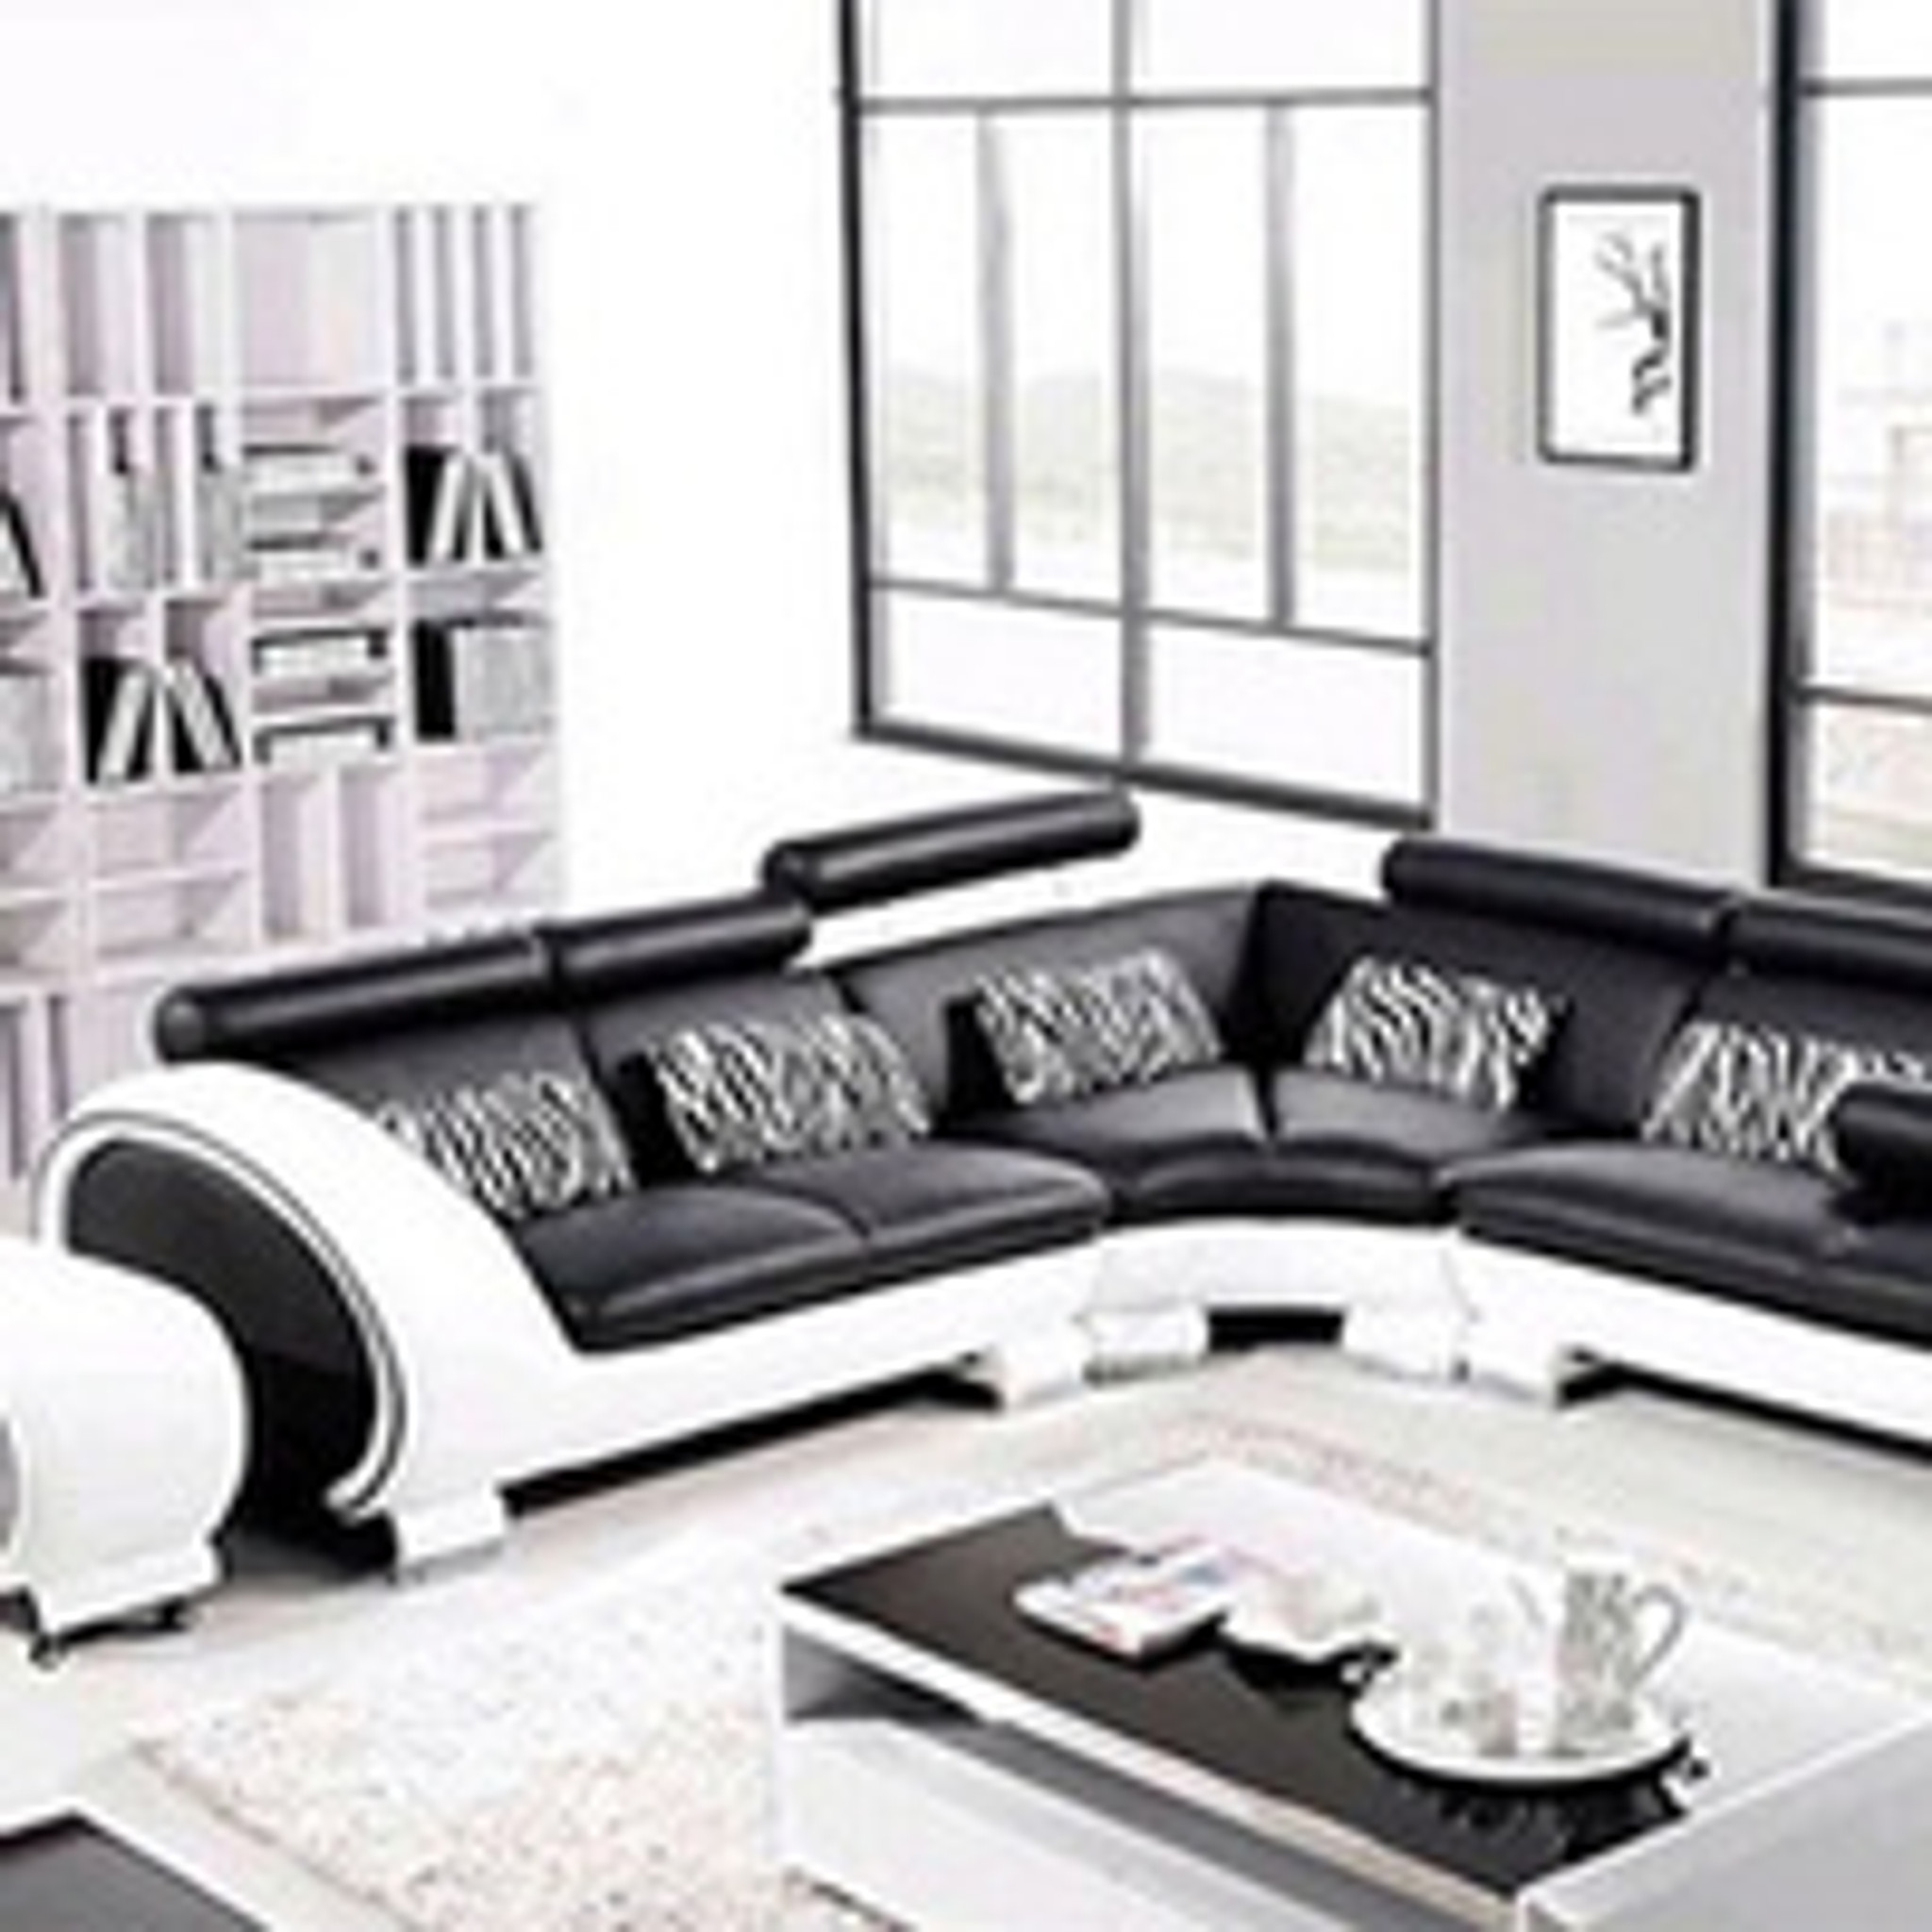 Discounts and Deals: the Perks of Buying Furniture Online